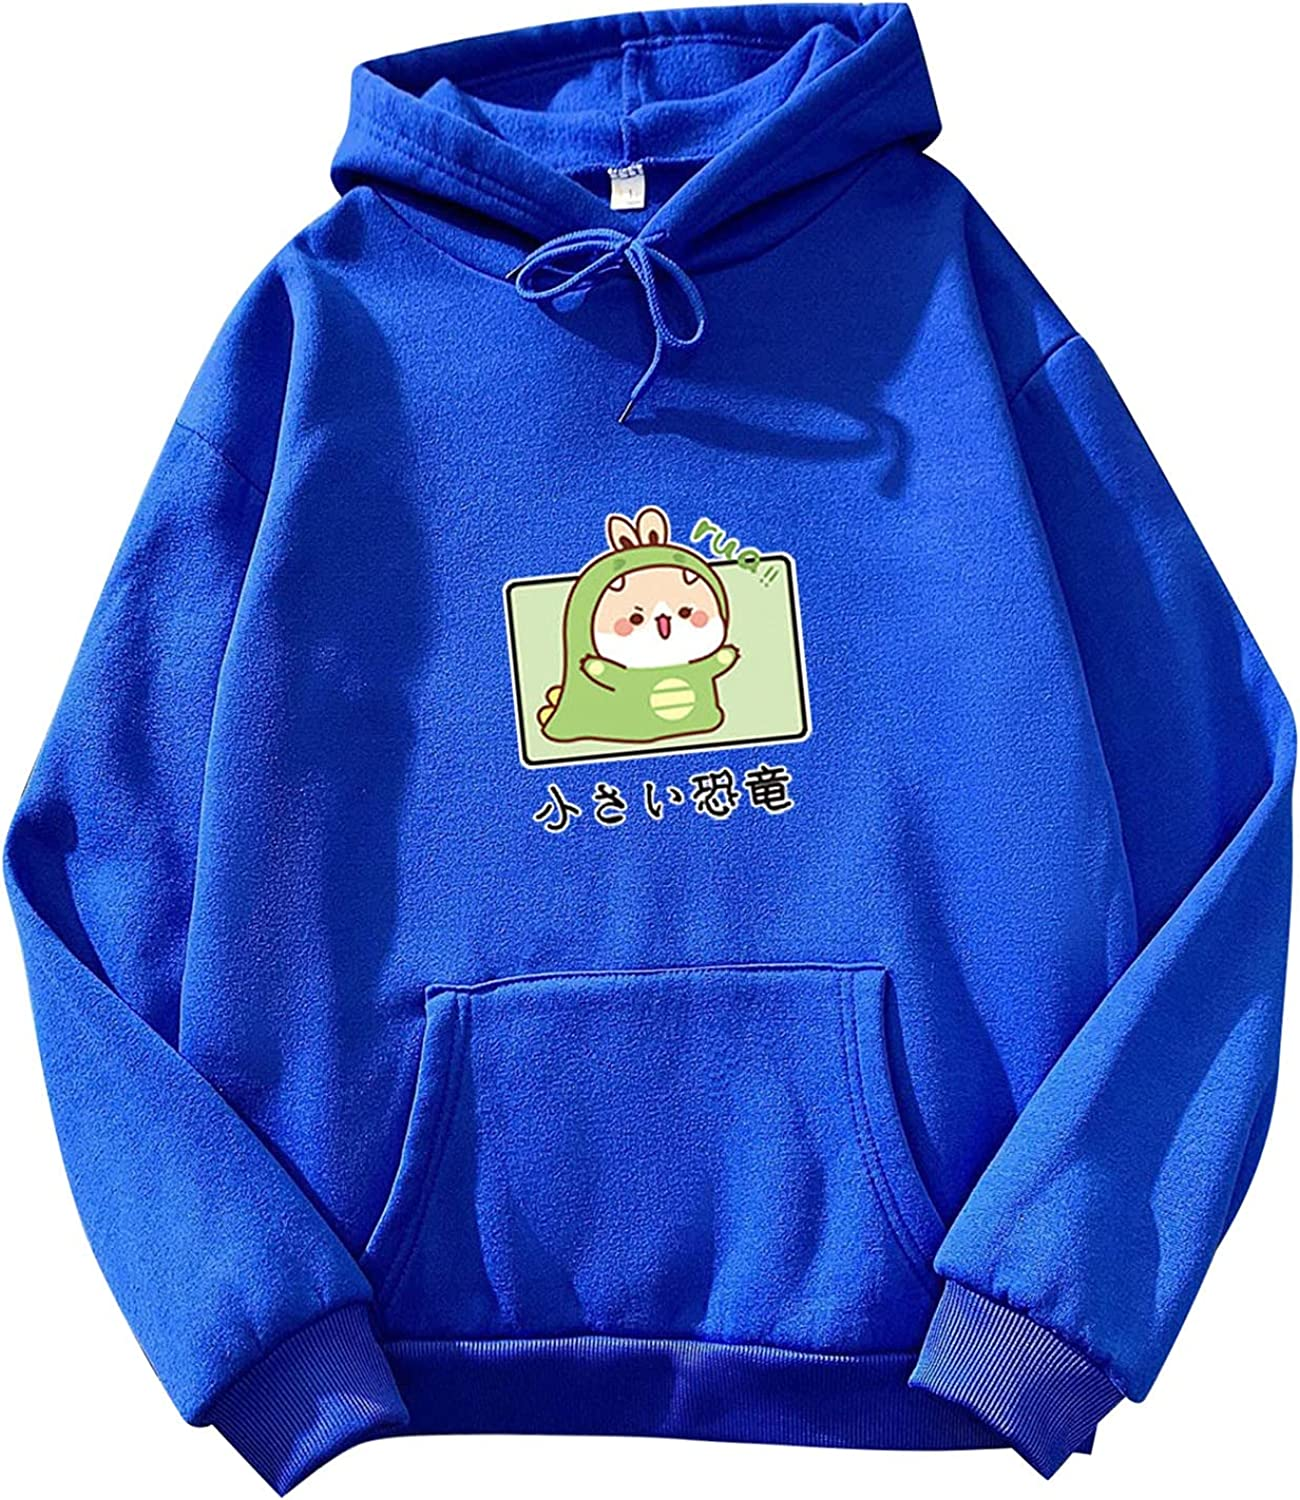 NEEKEY Comfy Hoodies for Womens - Casual Reservation Long Pullovers S free Sleeve